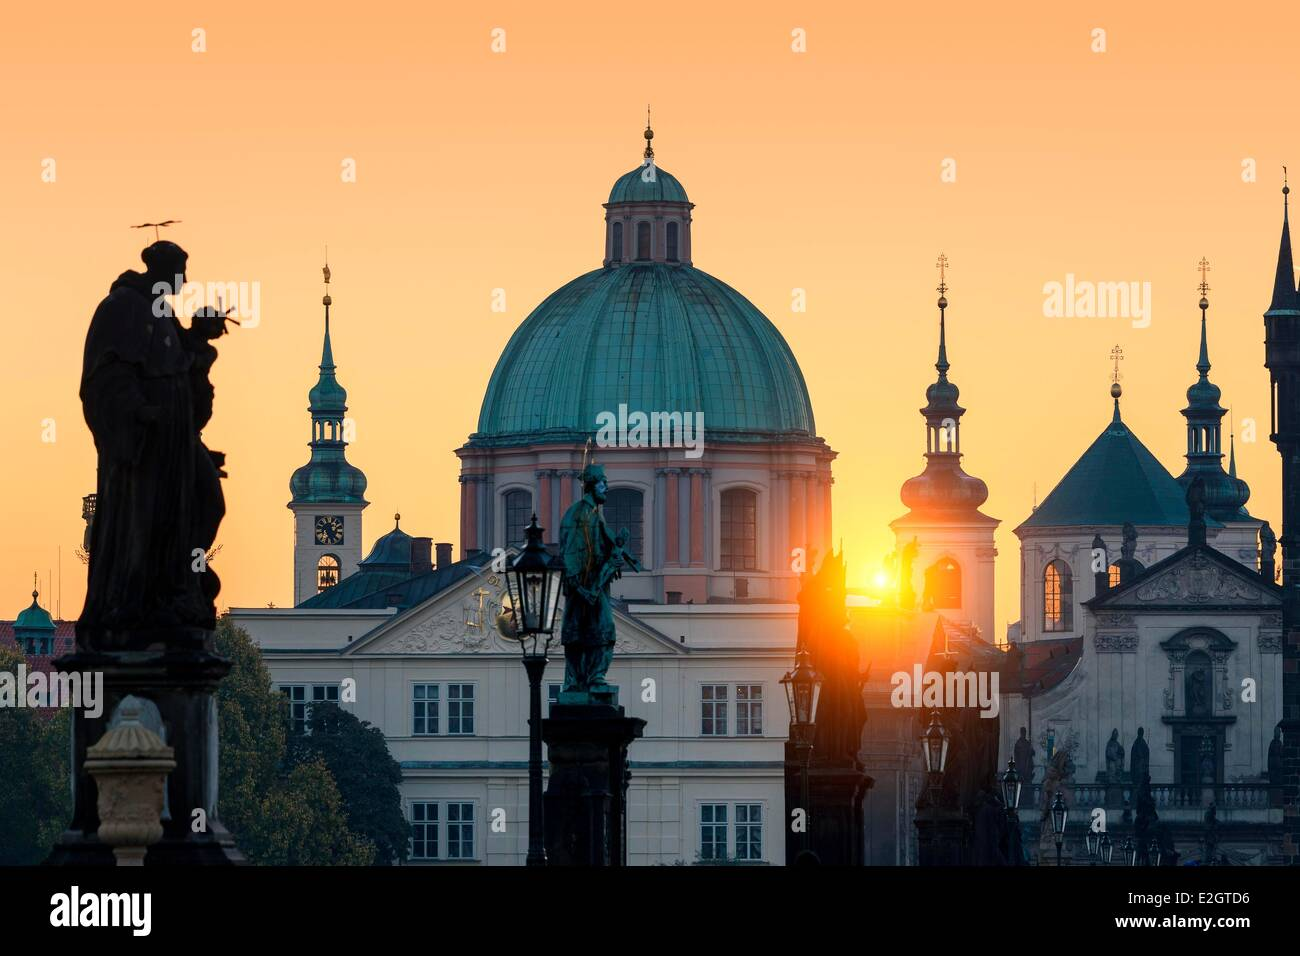 Czech Republic Prague historical centre listed as World Heritage by UNESCO Charles Bridge and spires of Old Town - Stock Image